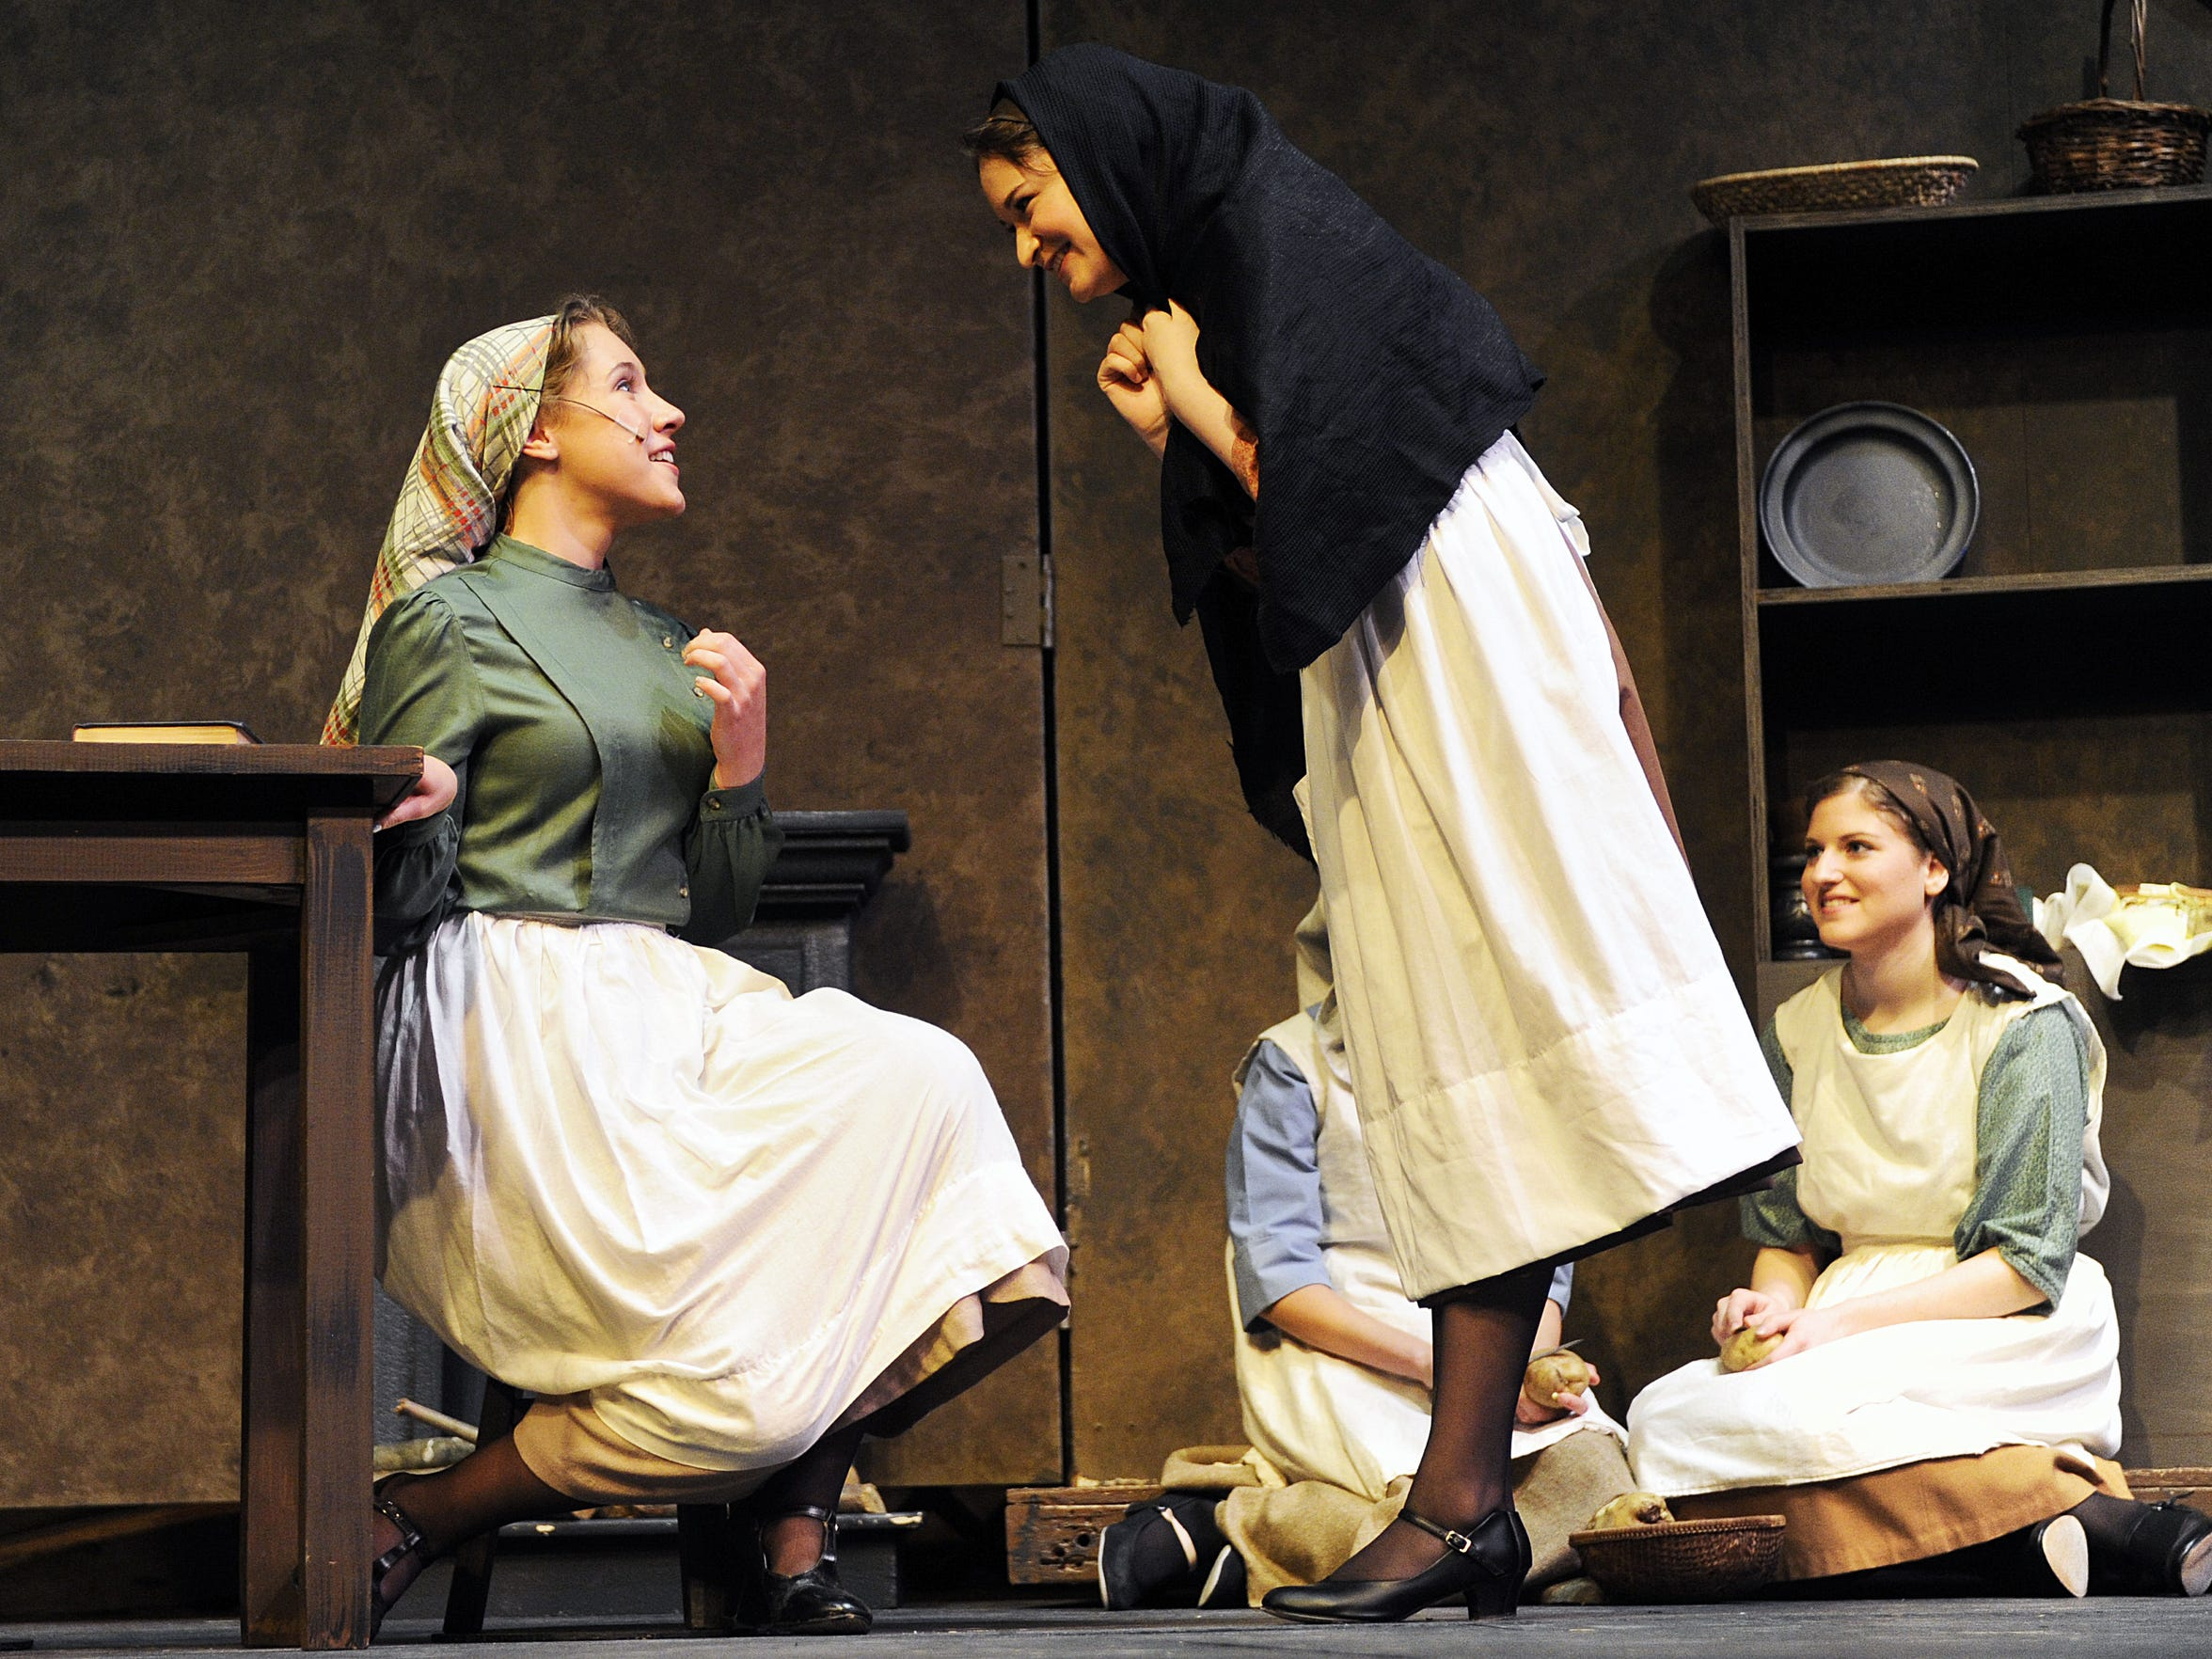 STA 0503 fiddler on the roof